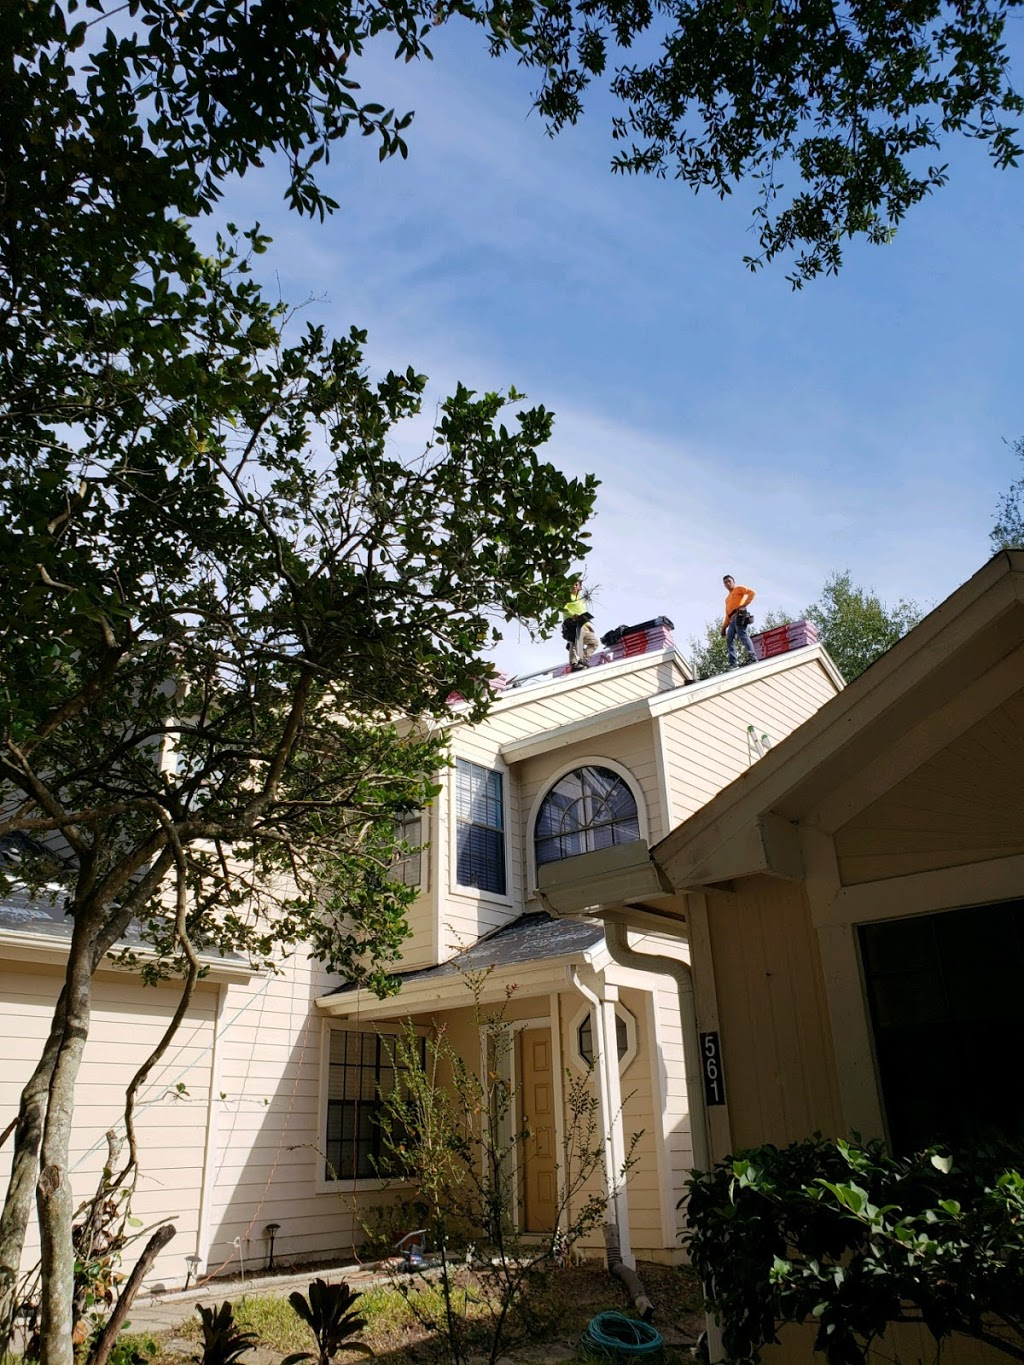 Keeping You Dry Roofing - roofing contractor    Photo 3 of 3   Address: 631 Triumph Ct unit 4, Orlando, FL 32805, USA   Phone: (407) 253-2221